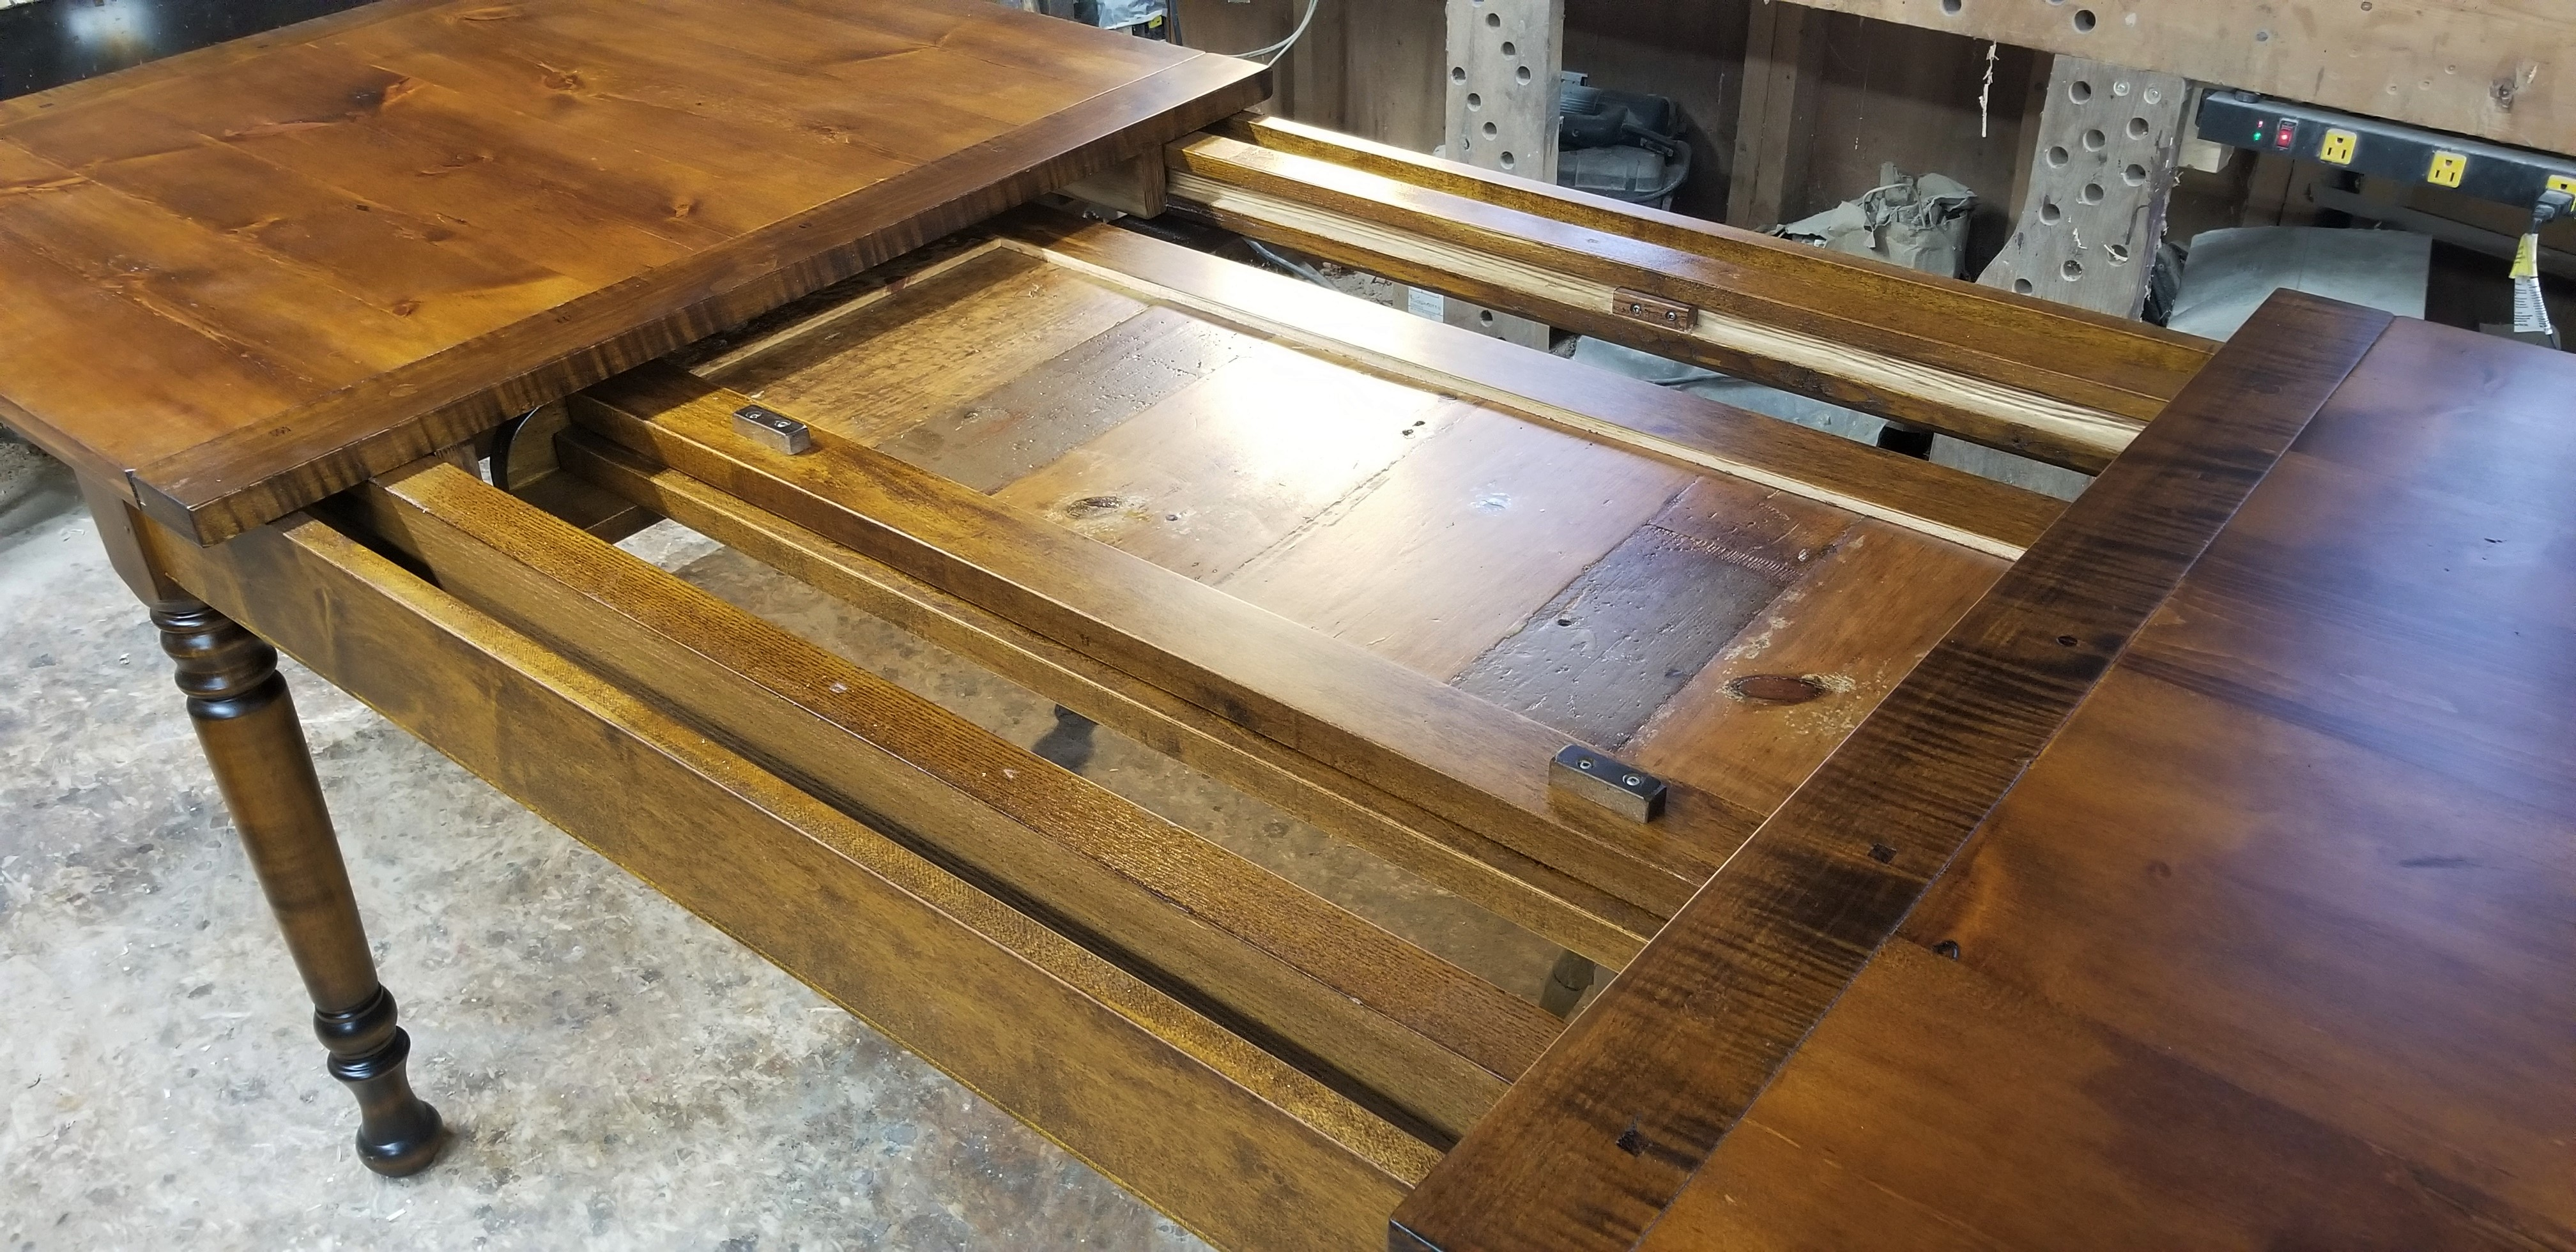 6' center-leaf extension table